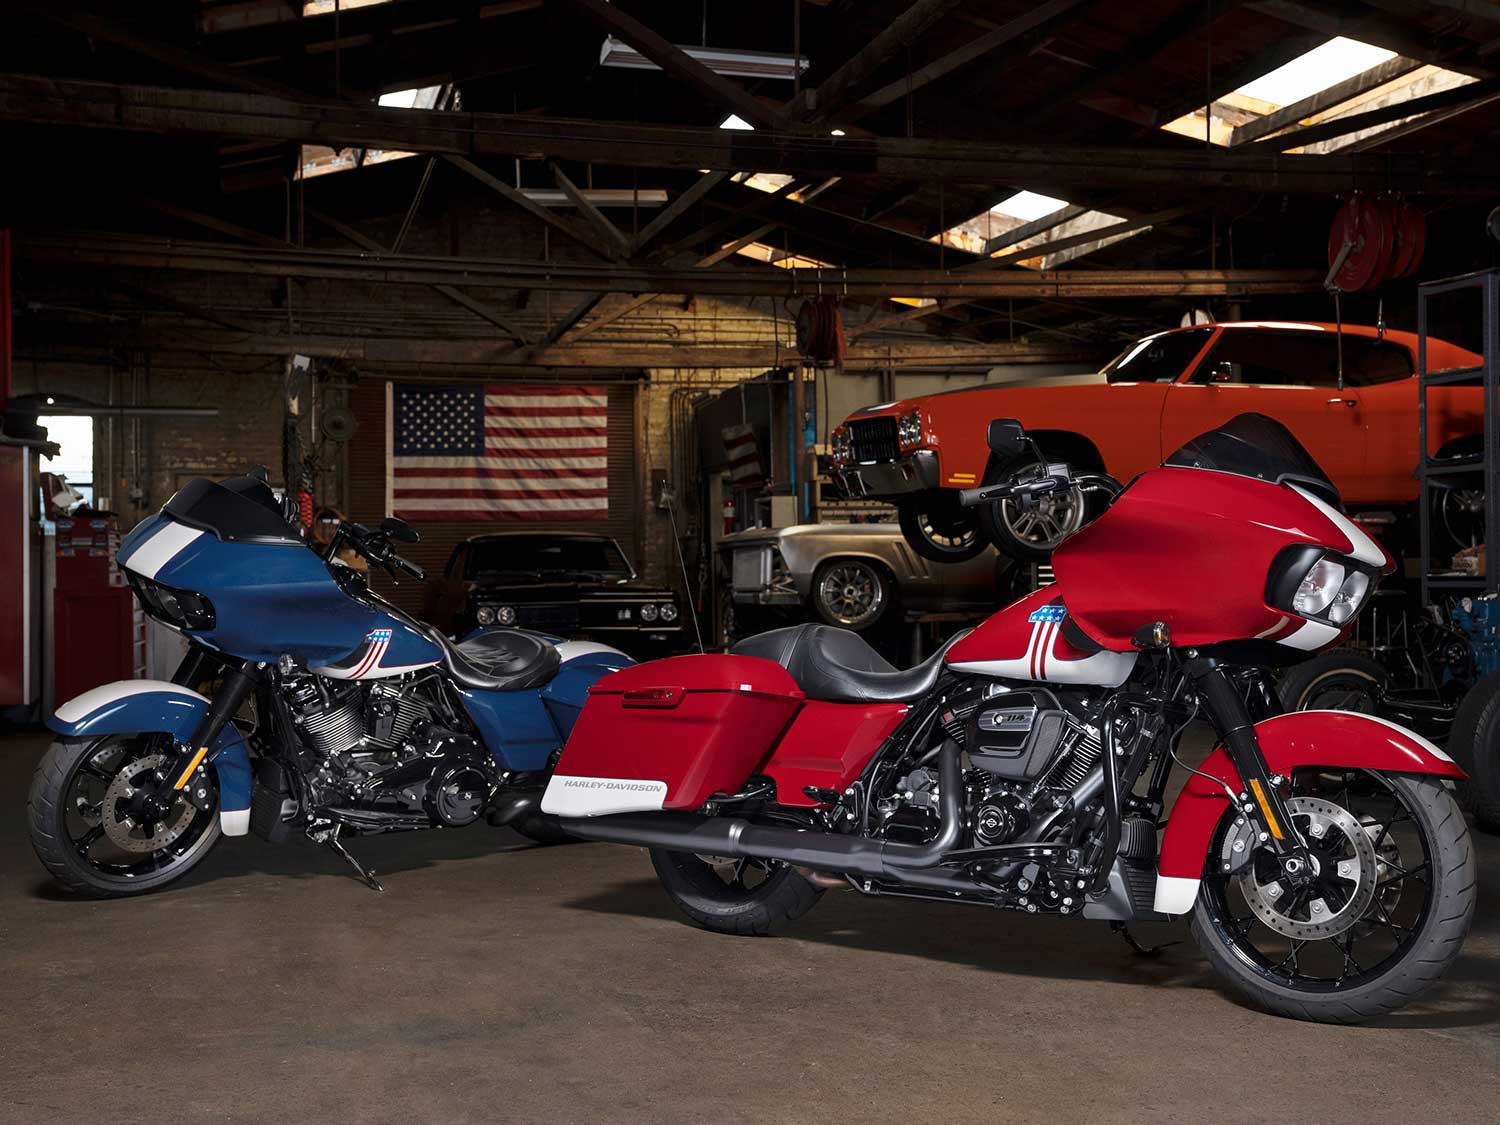 Harley Davidson Debuts New Paint For Road Glide Motorcycle Cruiser